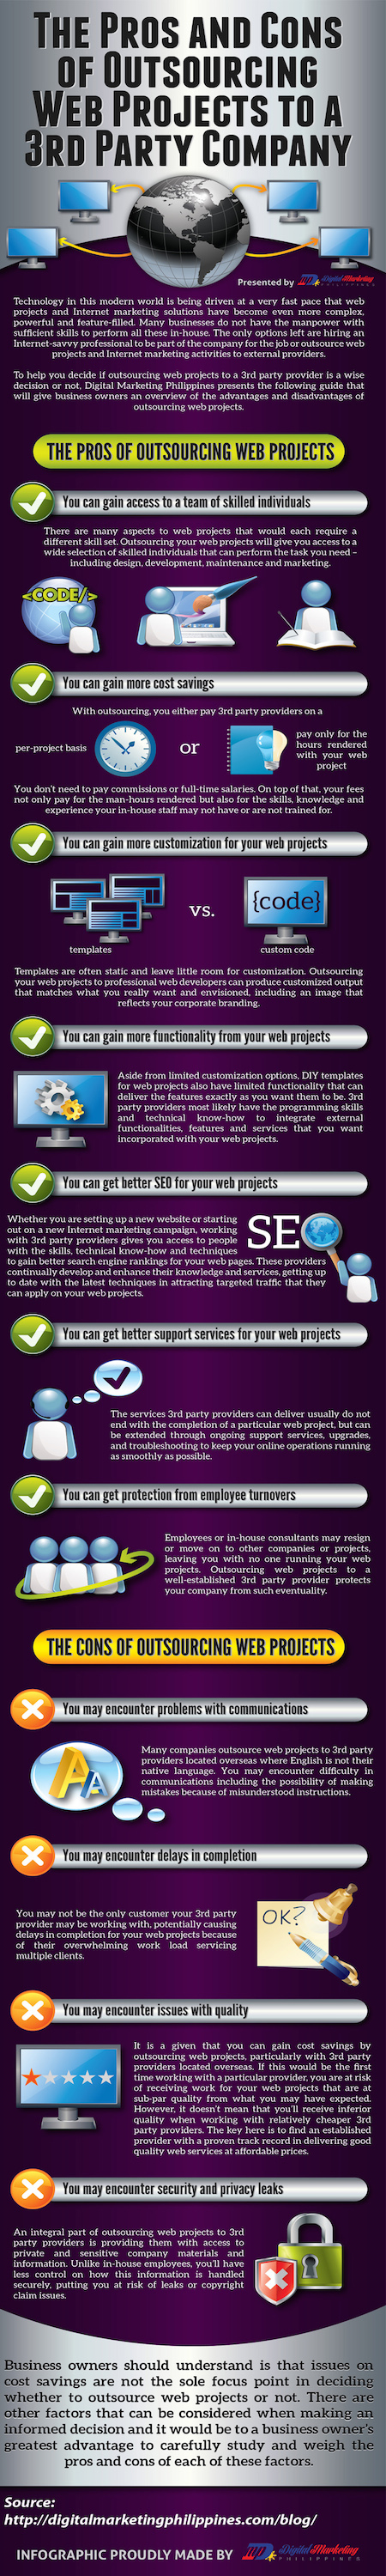 The-Pros-and-Cons-of-Outsourcing-Web-Projects-to-a-3rd-Party-Company